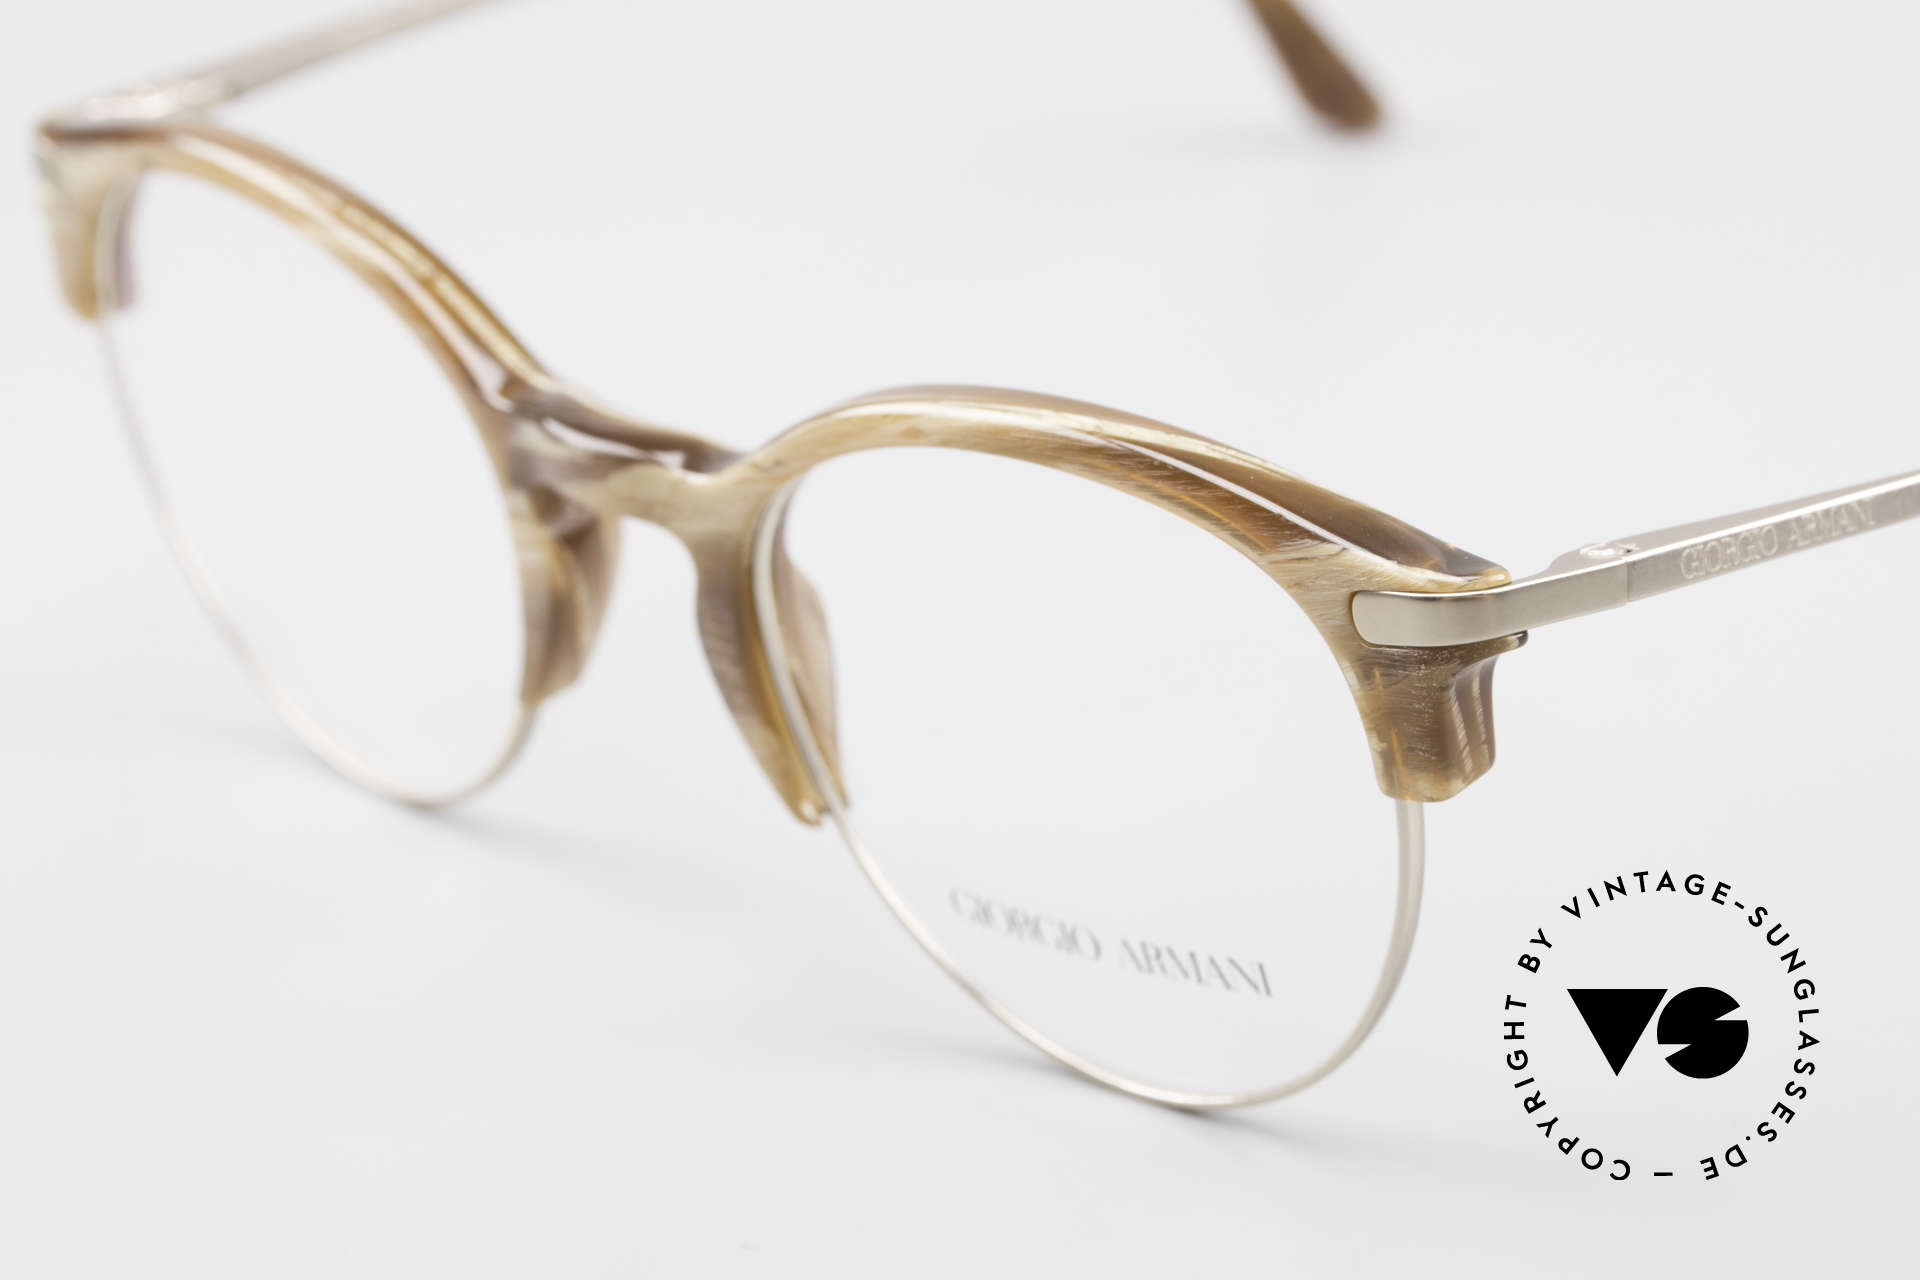 Giorgio Armani 7014 Panto Frame With Spring Hinges, elegant color combination (horn imitation and titan), Made for Men and Women